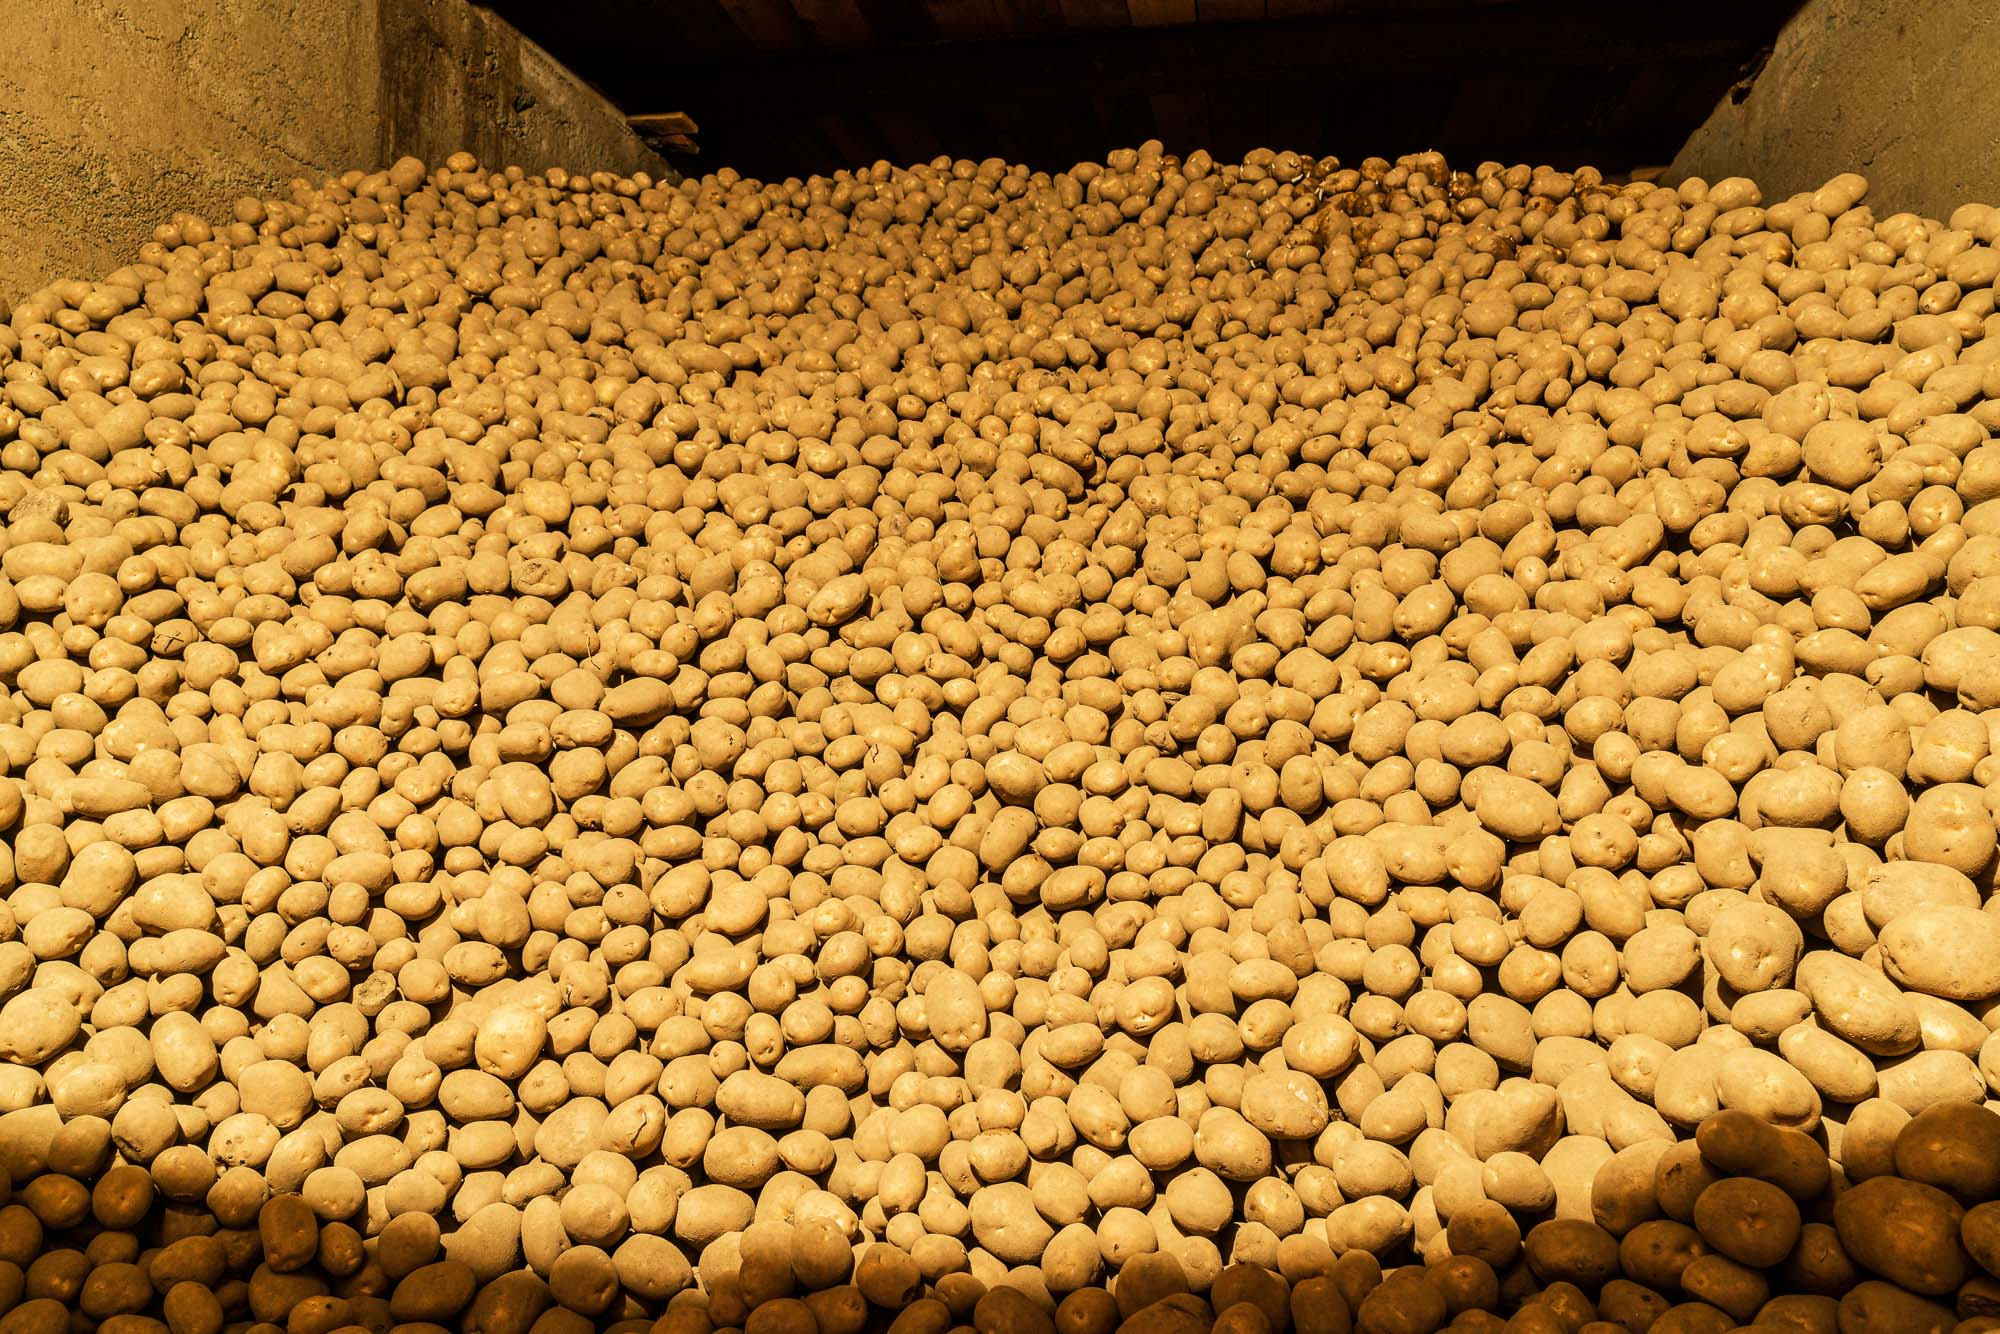 Vermont_Potatoes_001